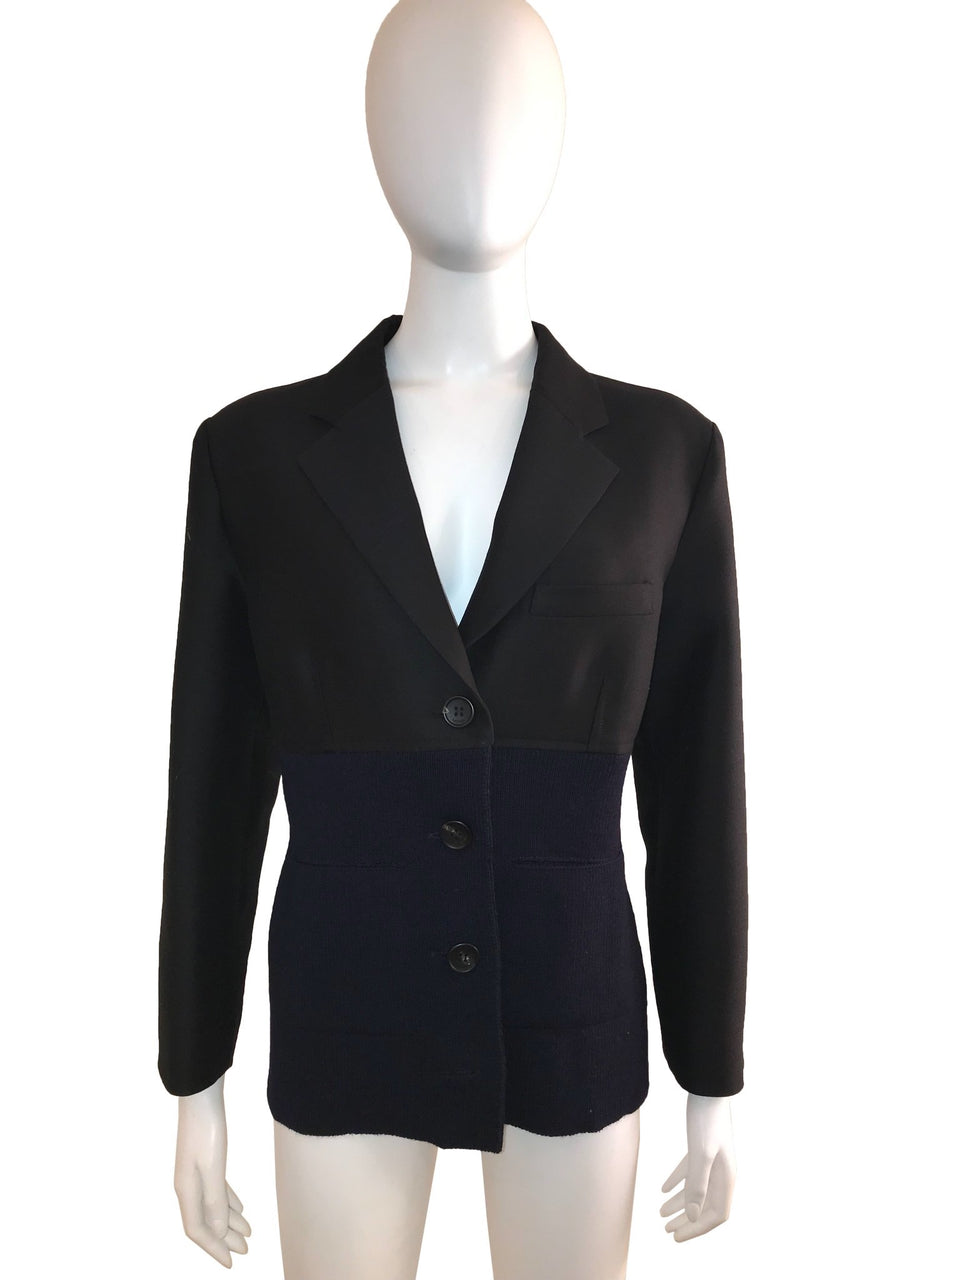 Blazer with Knit Bodice